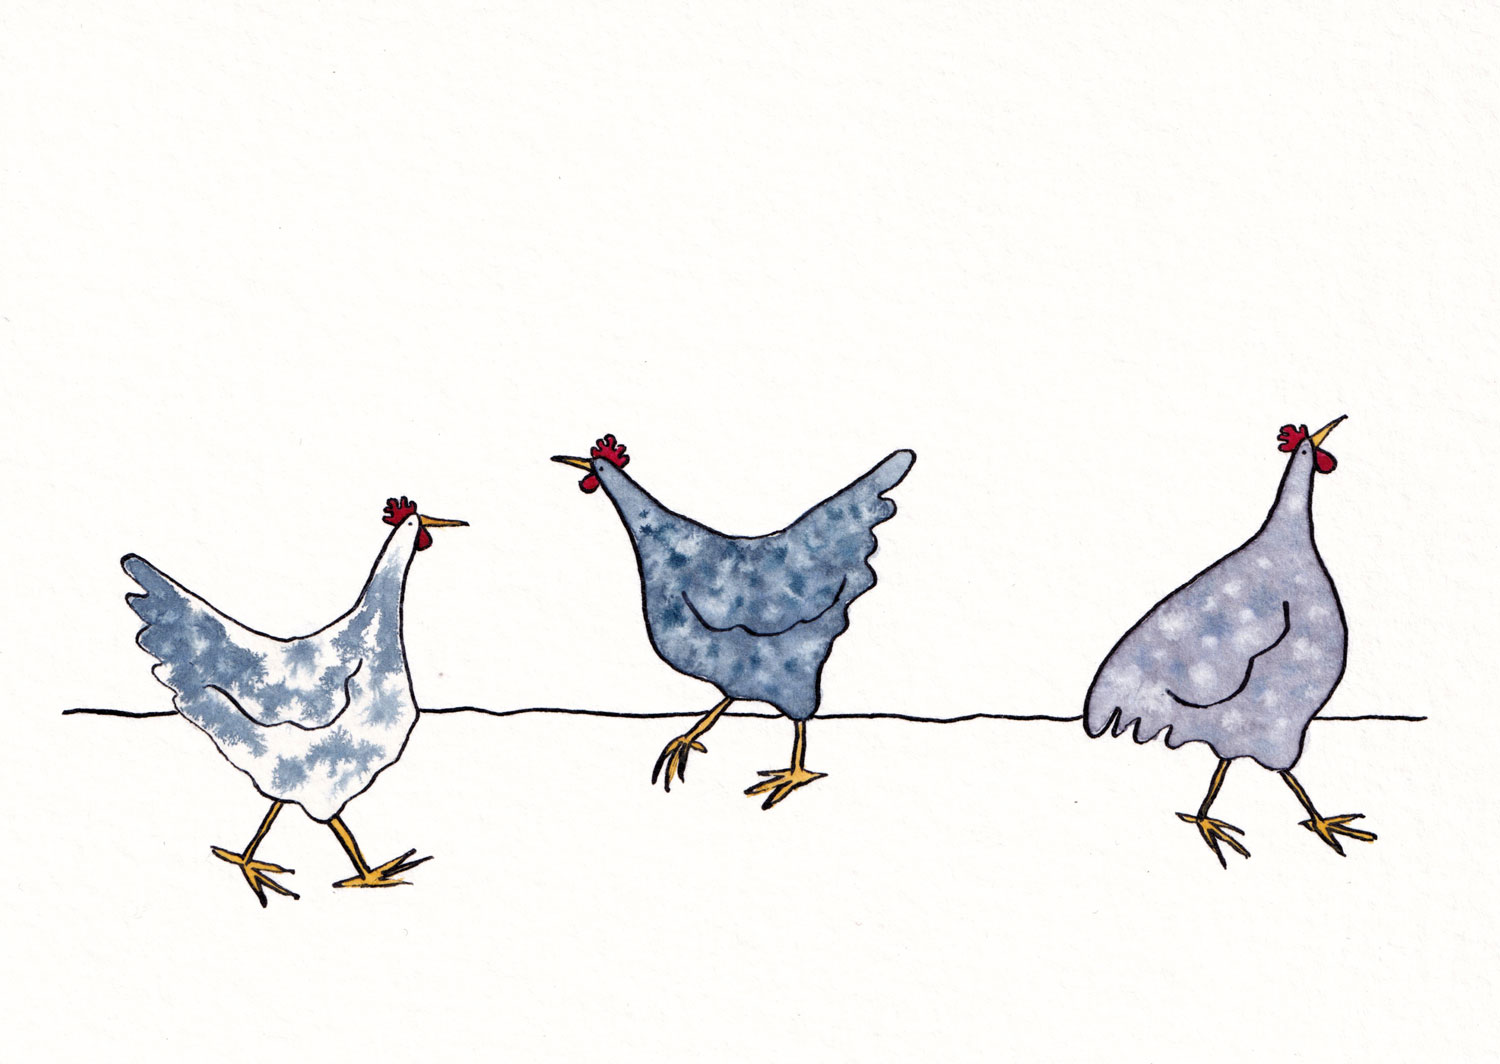 illustration of three hens in watercolour